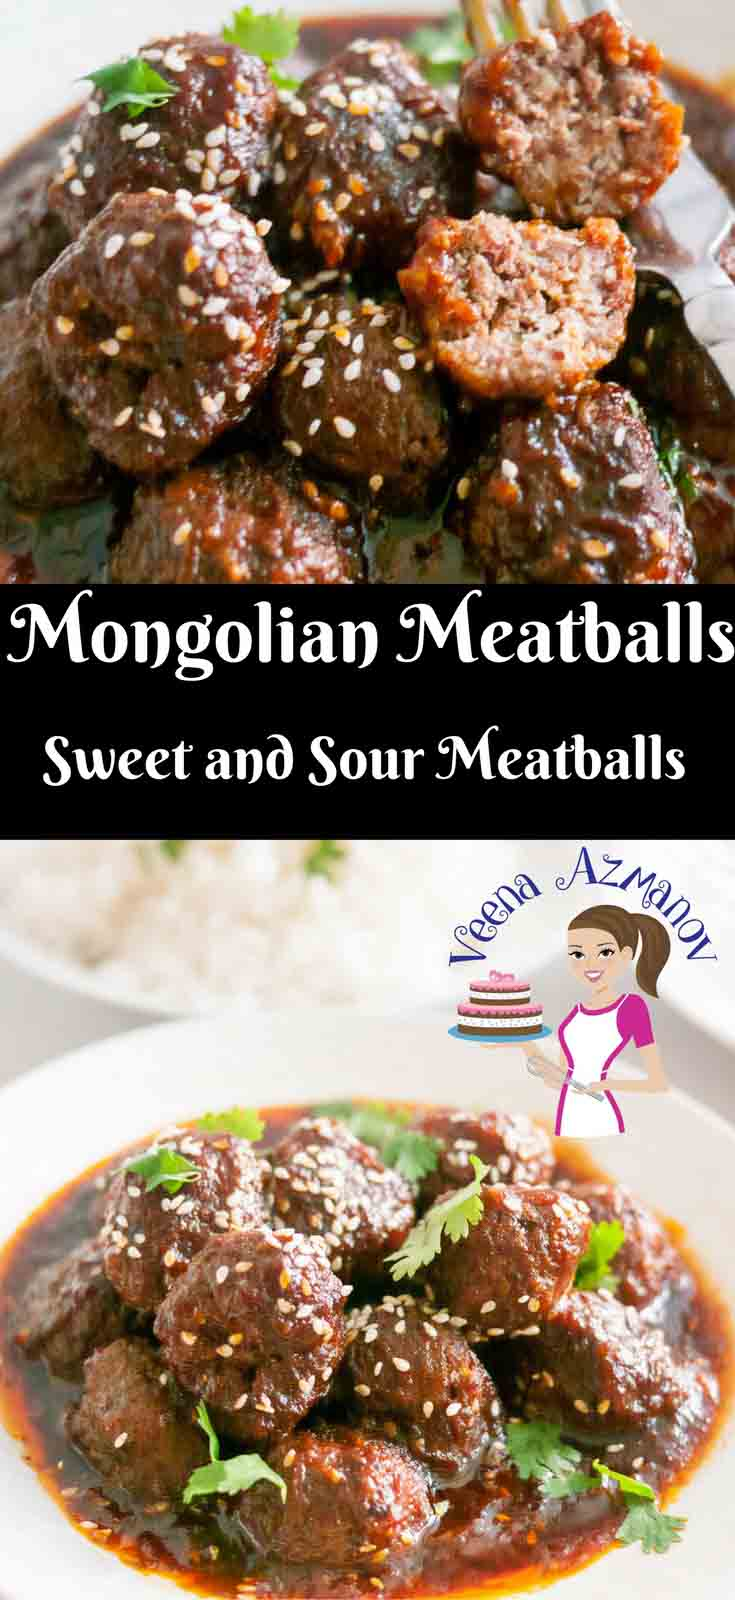 These Mongolian meatballs are tender, juicy with a bit of both sweet and sour. The brown sugar and soy gives it this rich dark glossy color while the vinegar and tomatoes add a nice zing. A great crowd pleaser and best to make extra as these are addictive.